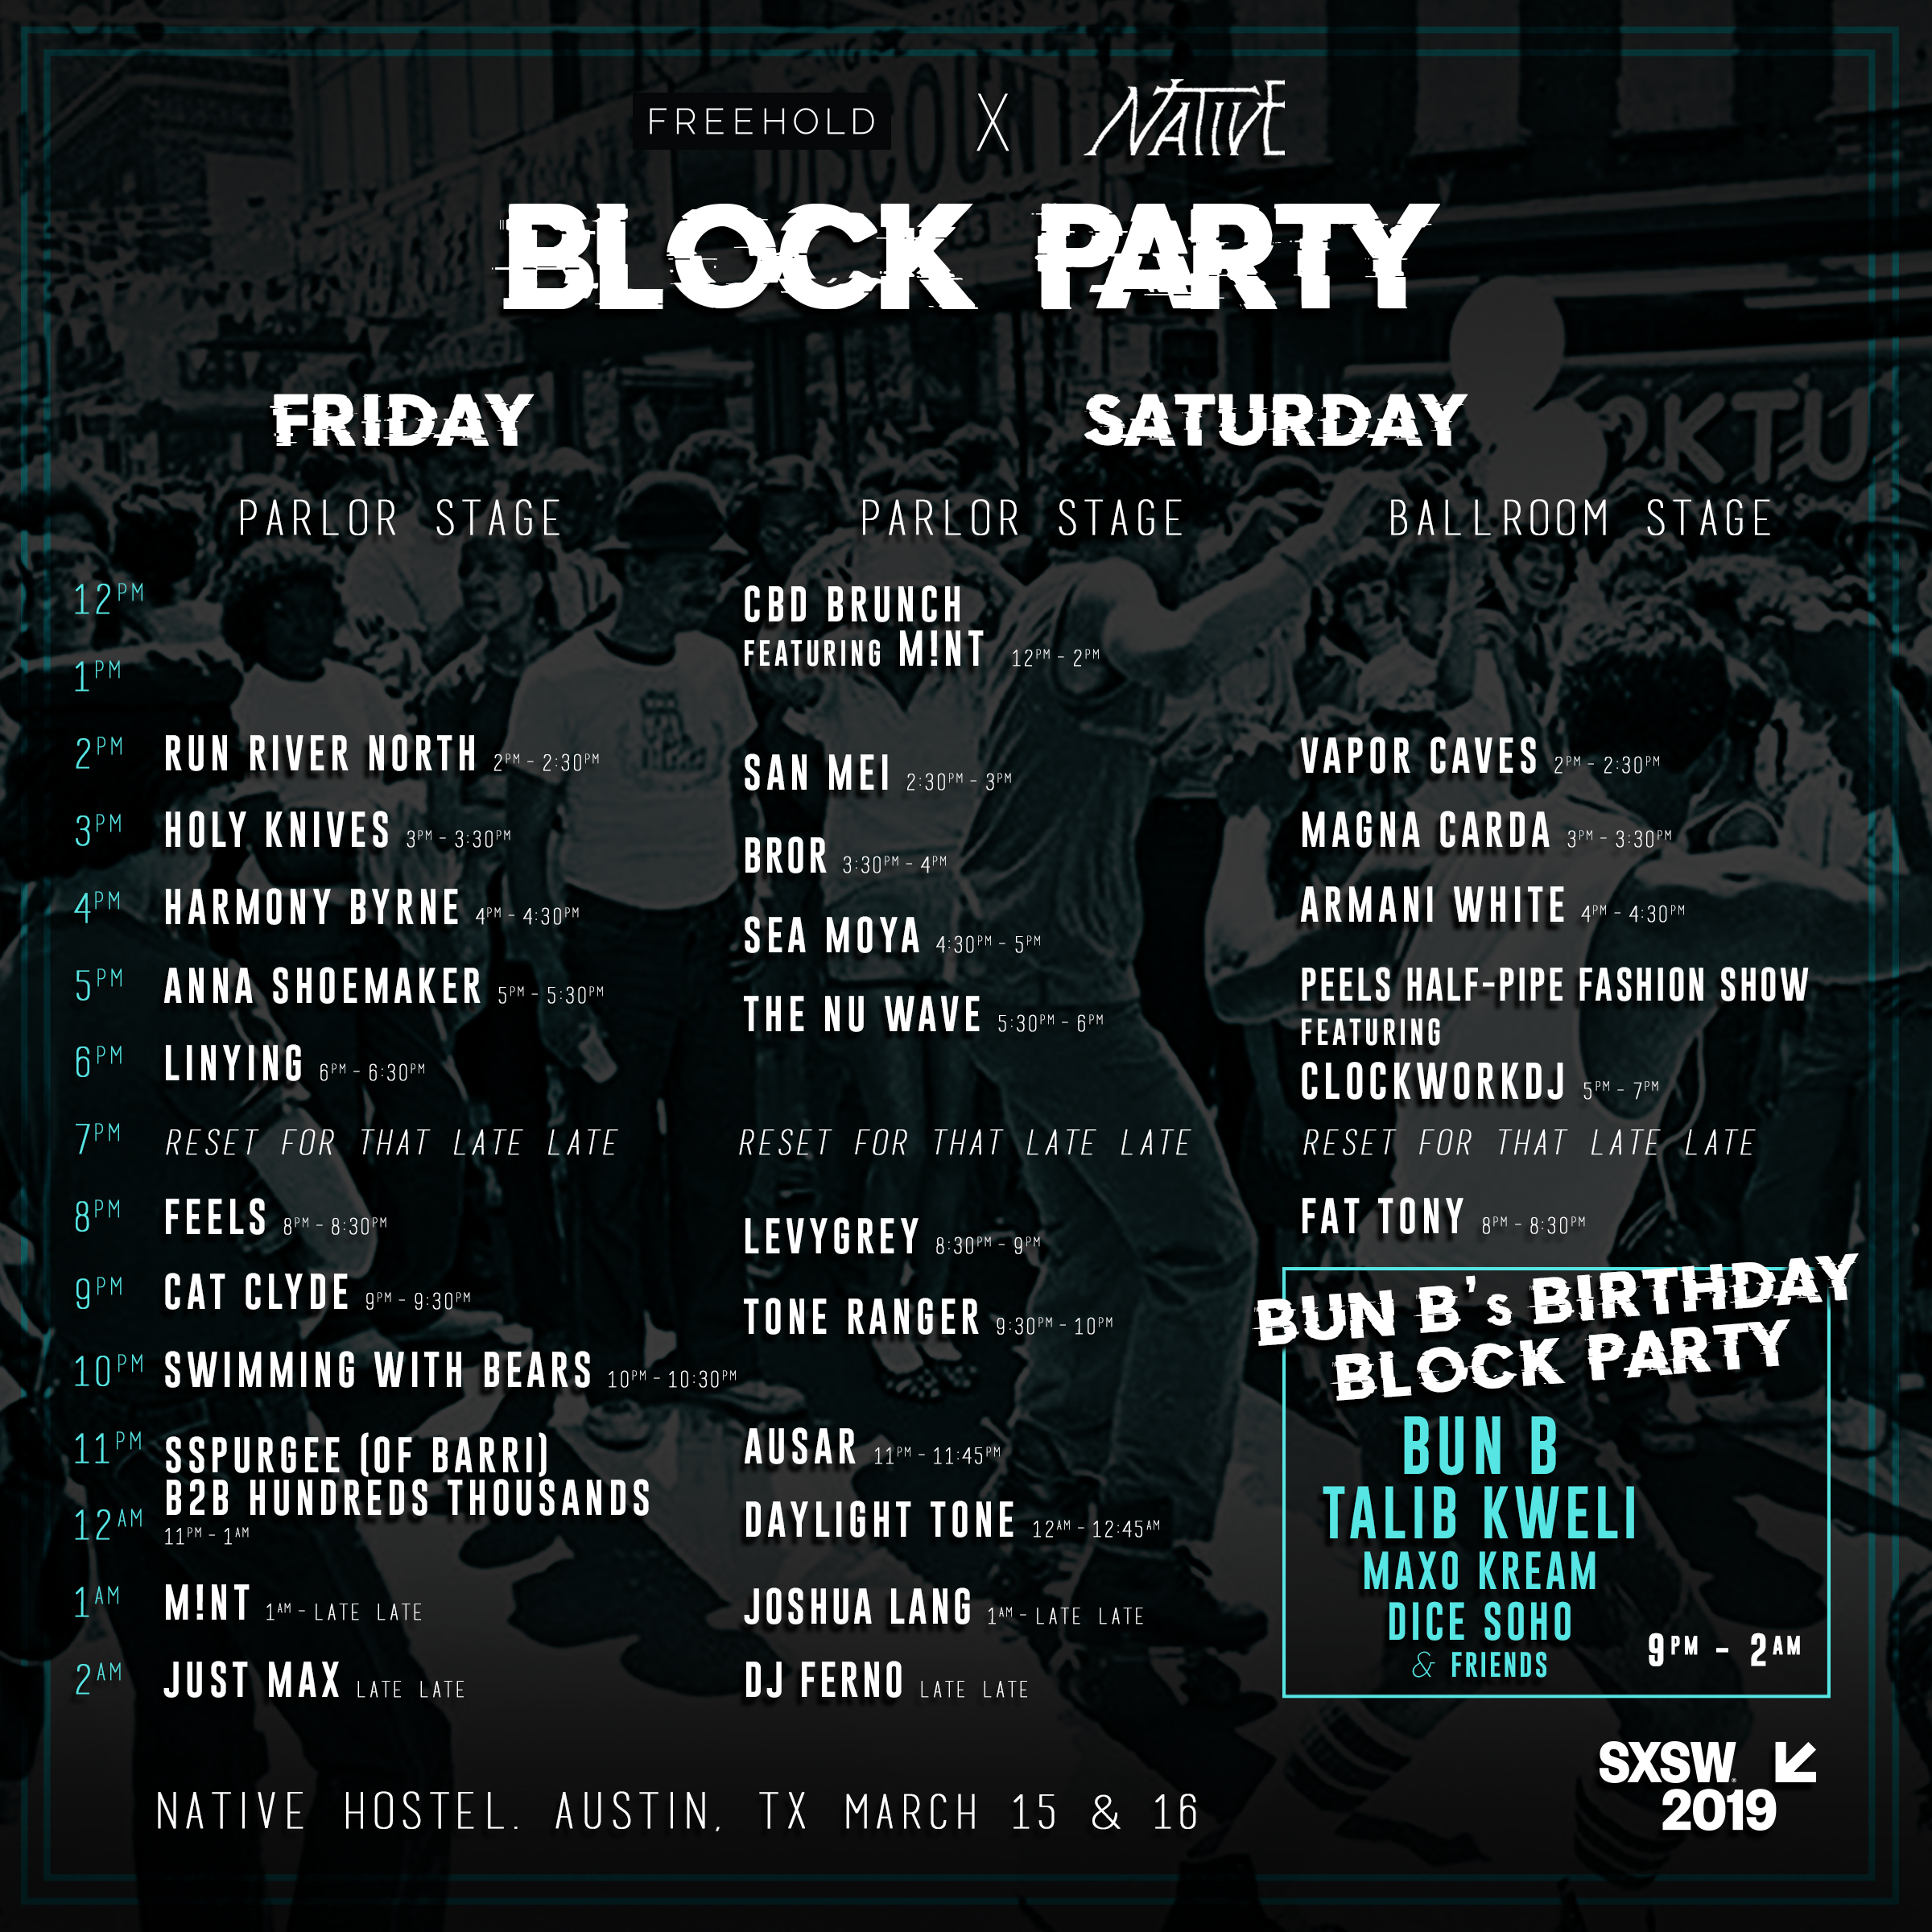 BLOCK-PARTY-music-lineup.jpg